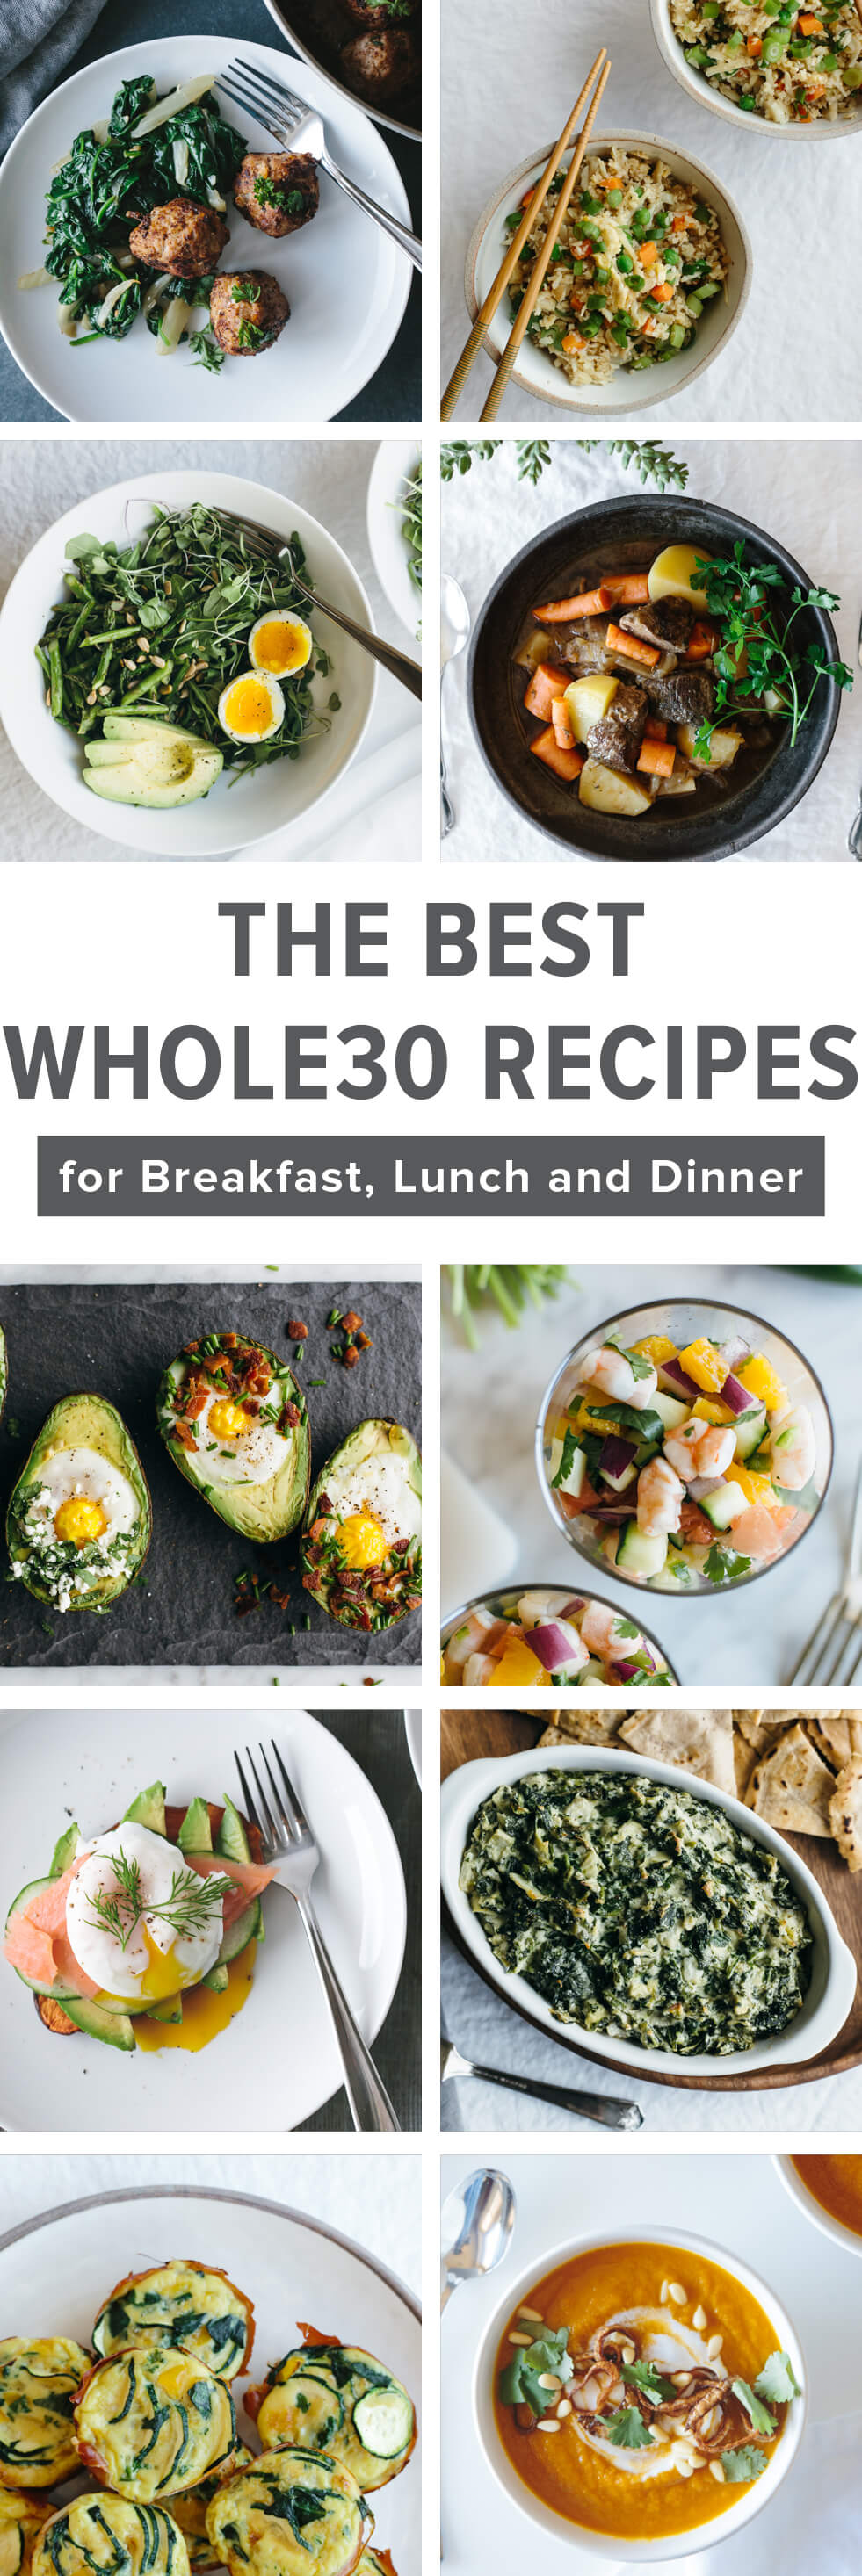 The best Whole30 recipes for breakfast, lunch and dinner.